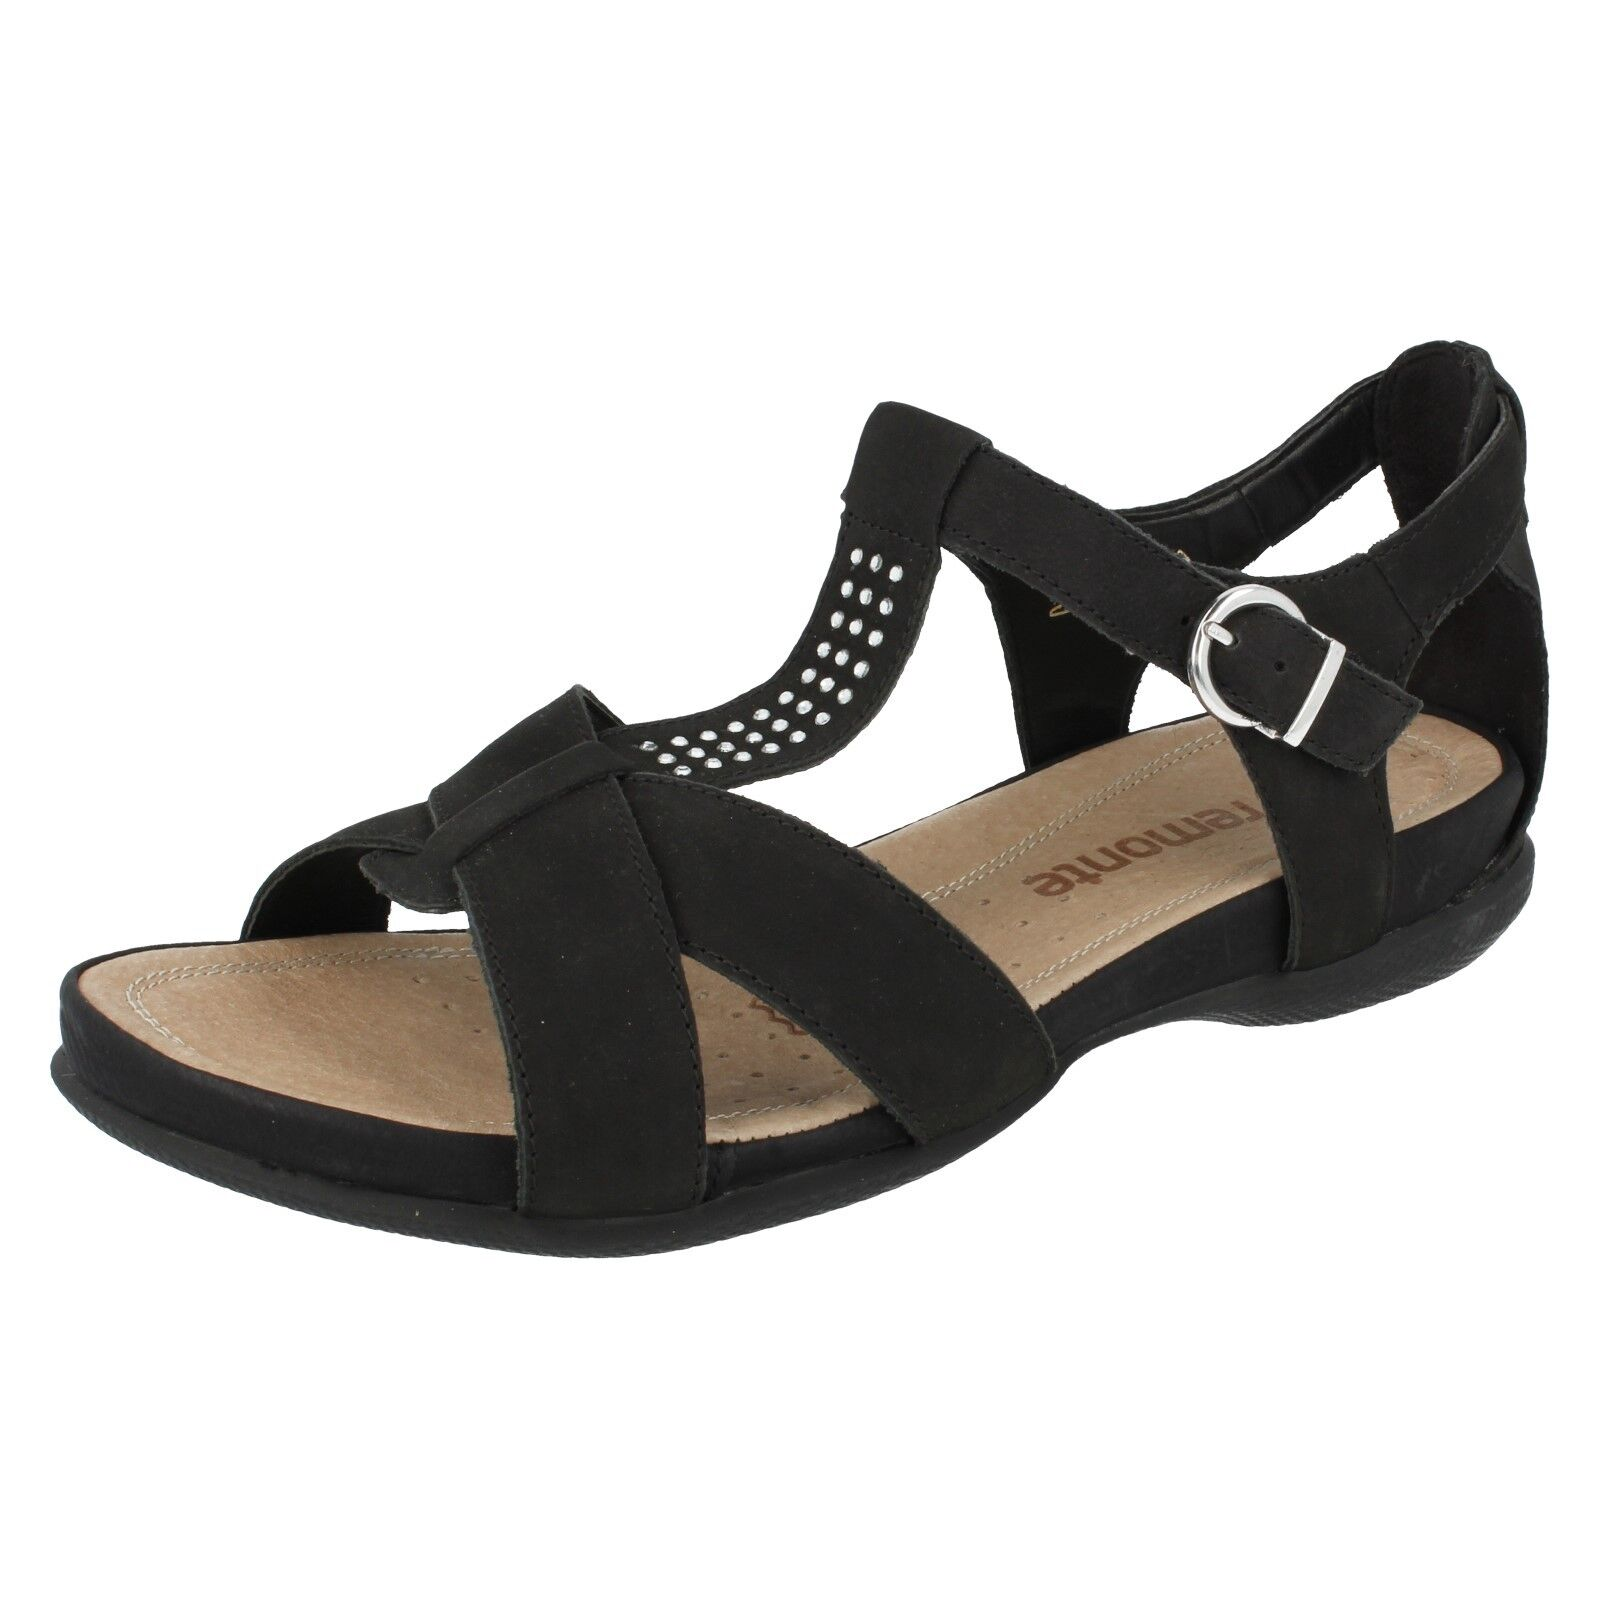 Último gran descuento Ladies Black Leather open Toe Summer Remonte Sandals R7455